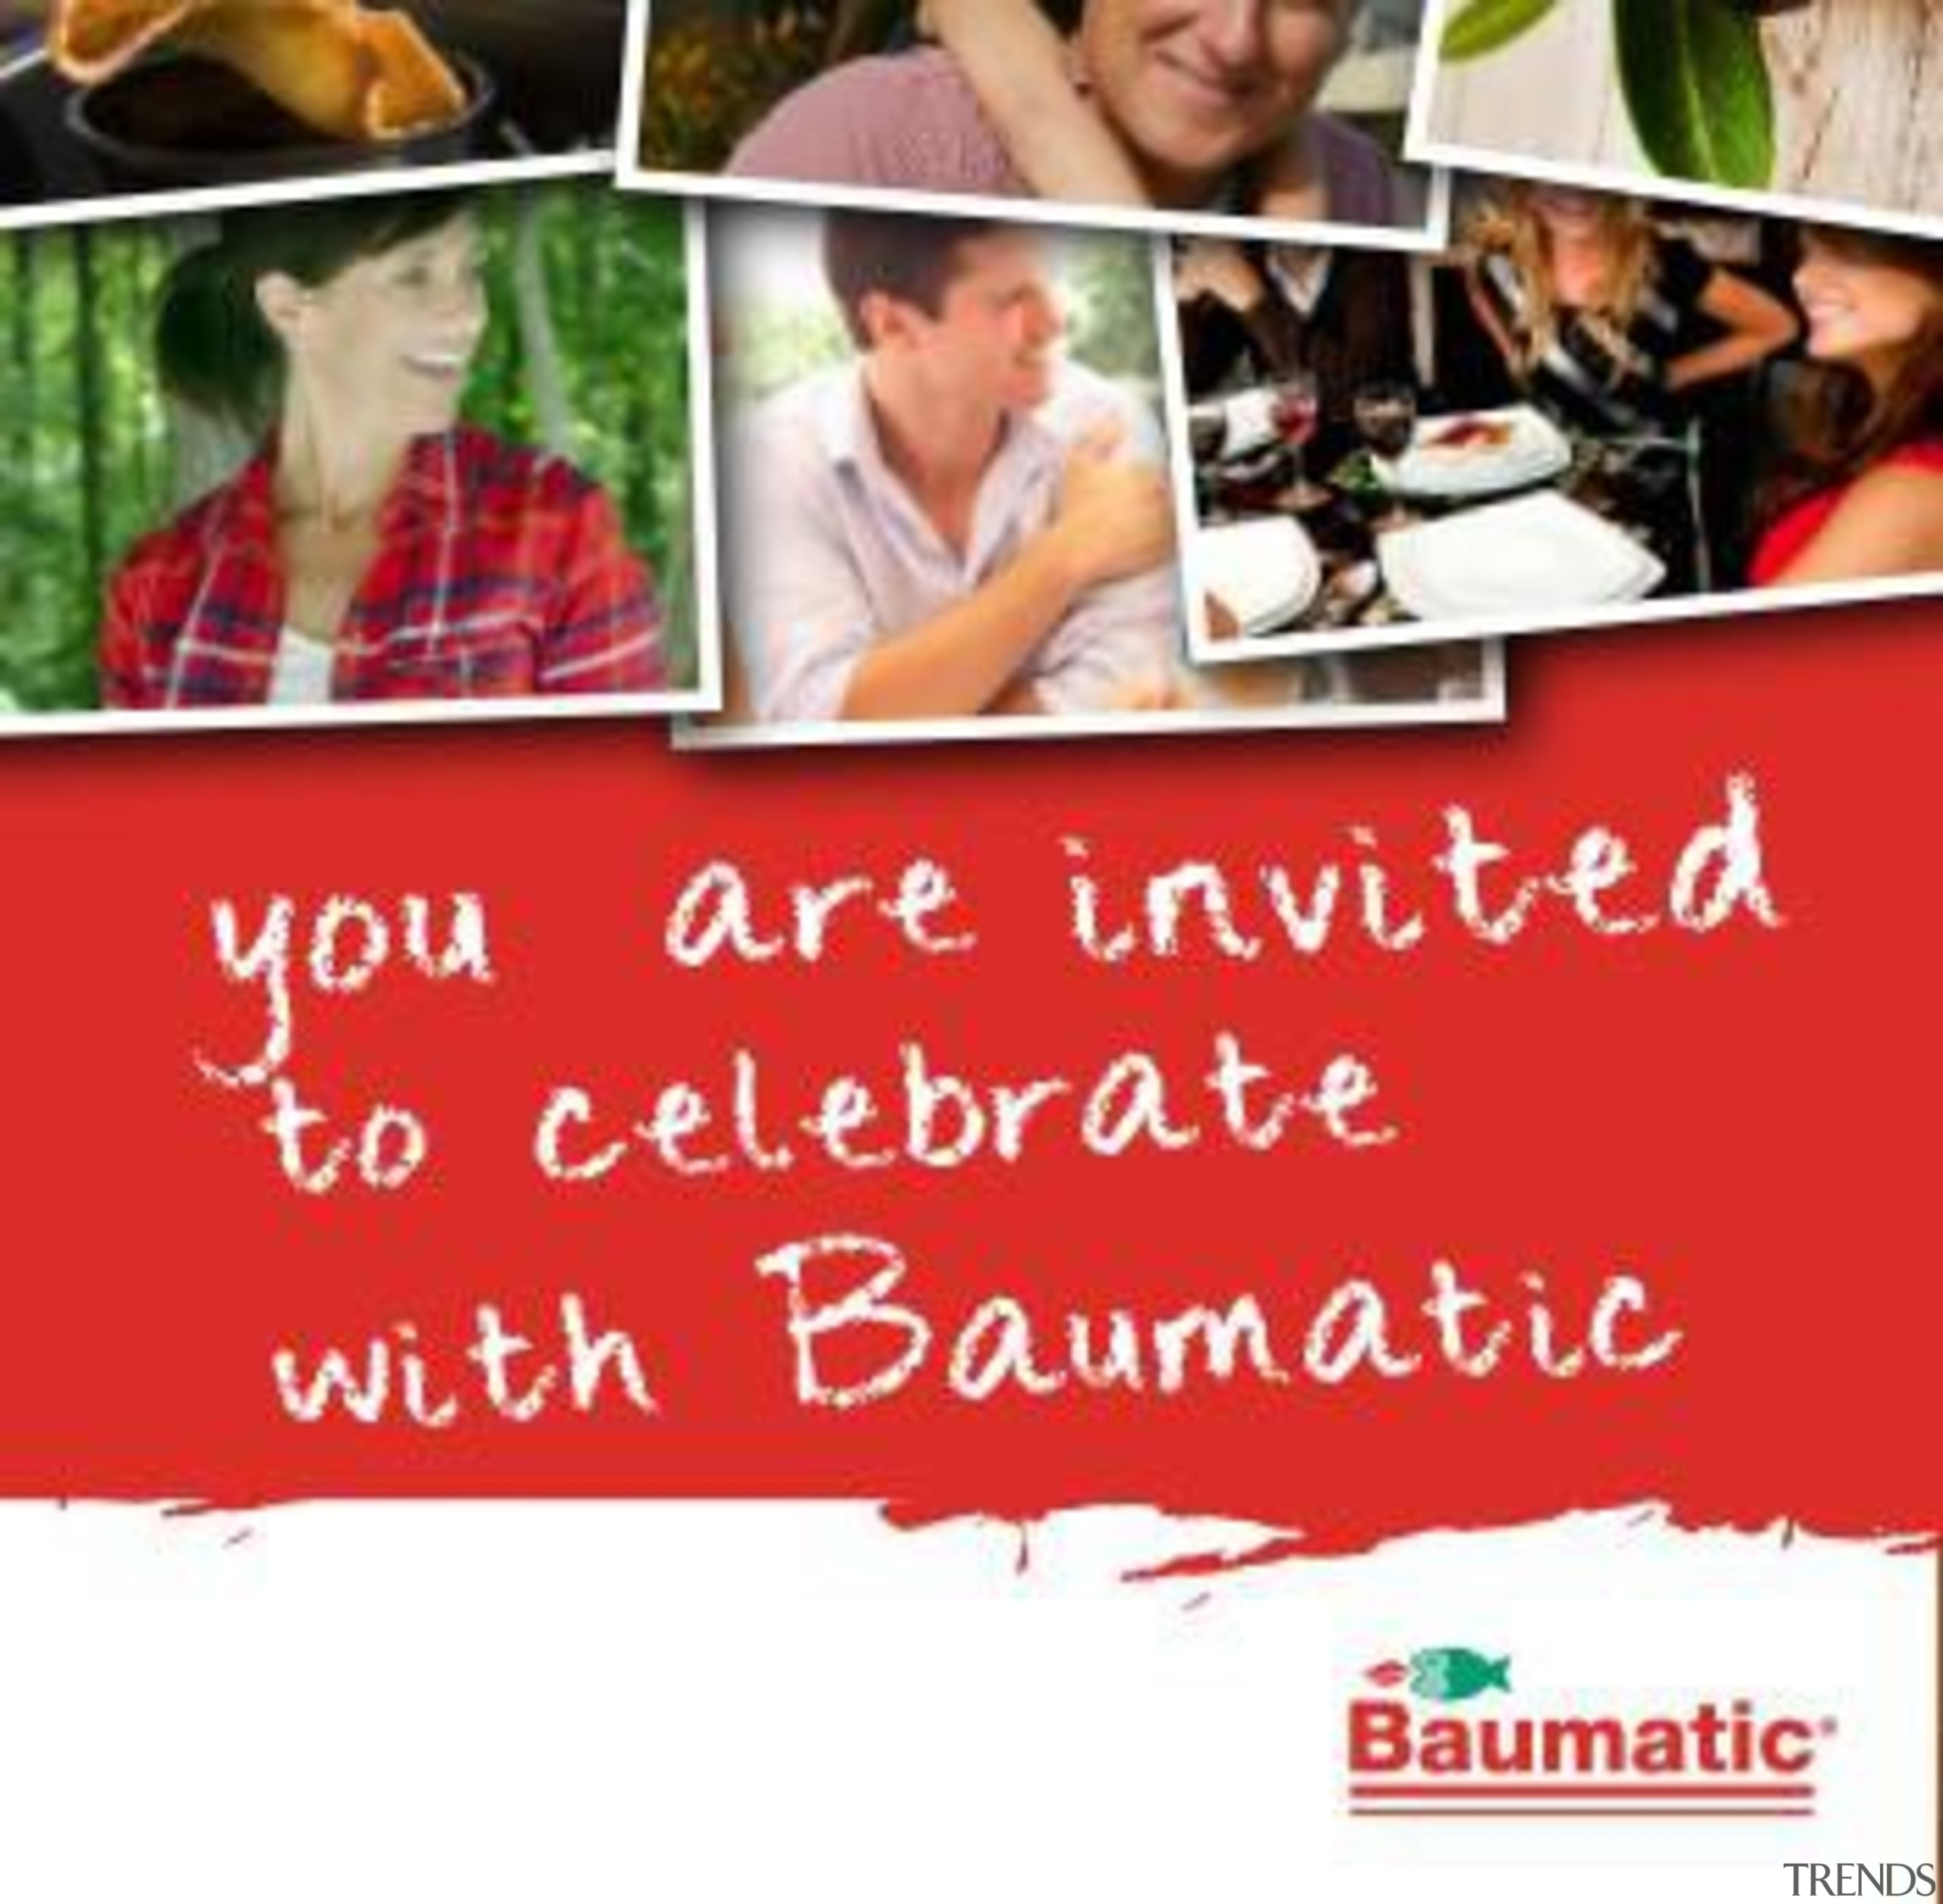 For more information, please visit baumatic.co.nz advertising, banner, text, red, white